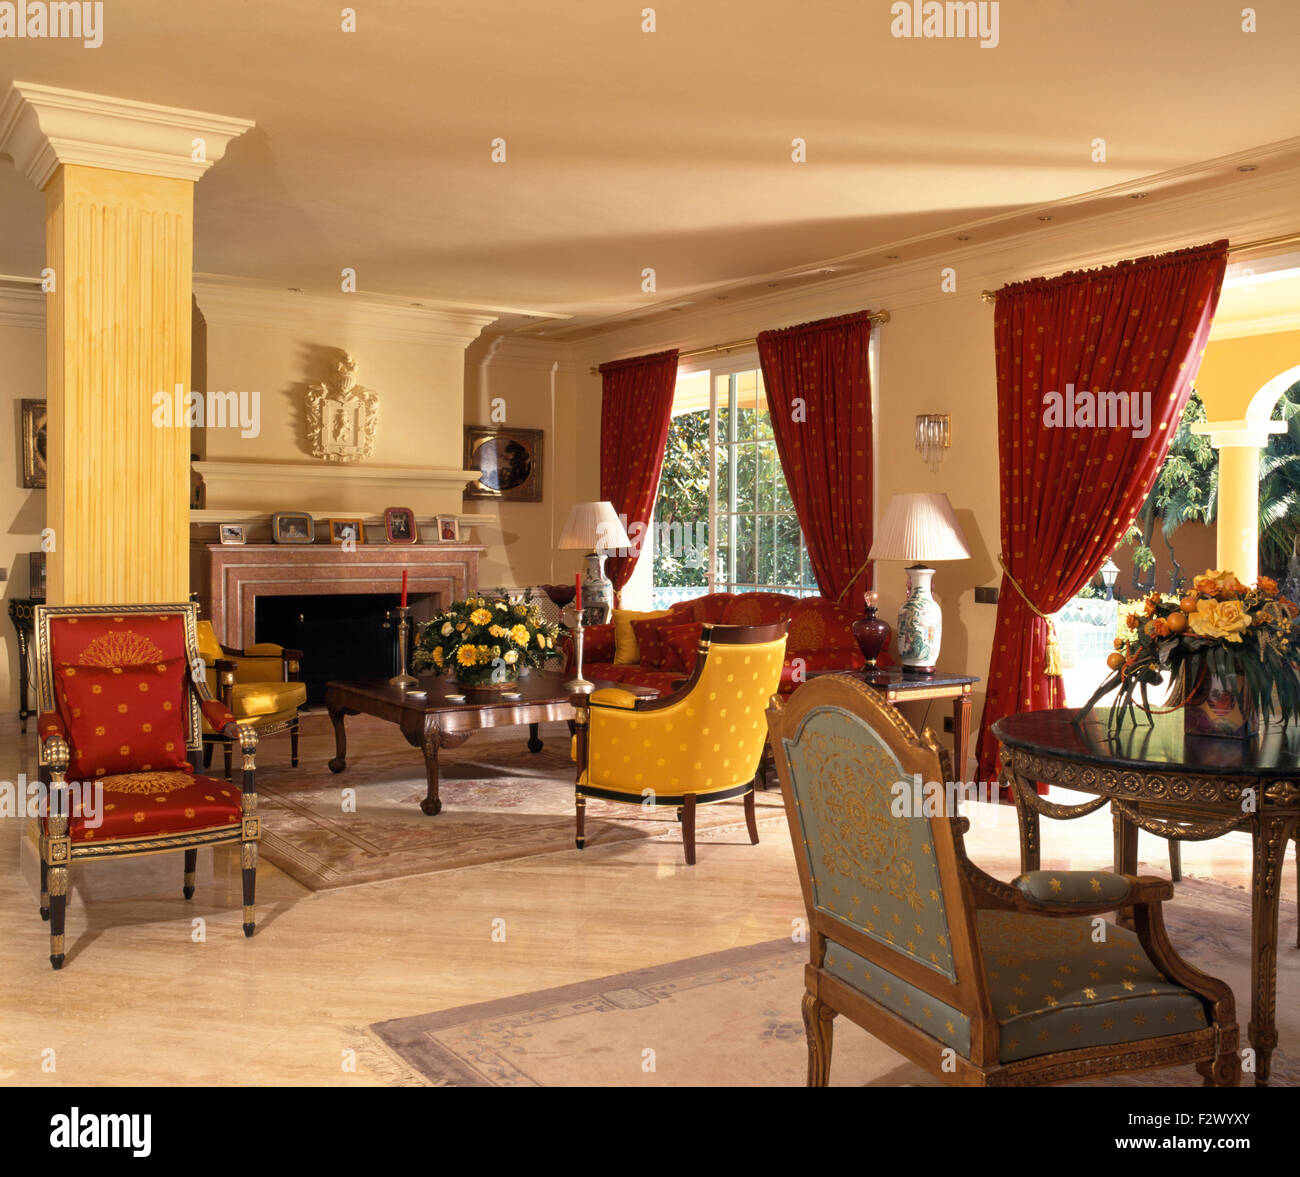 Red Curtains And Colourful Chairs And Sofa In Spanish Living Room